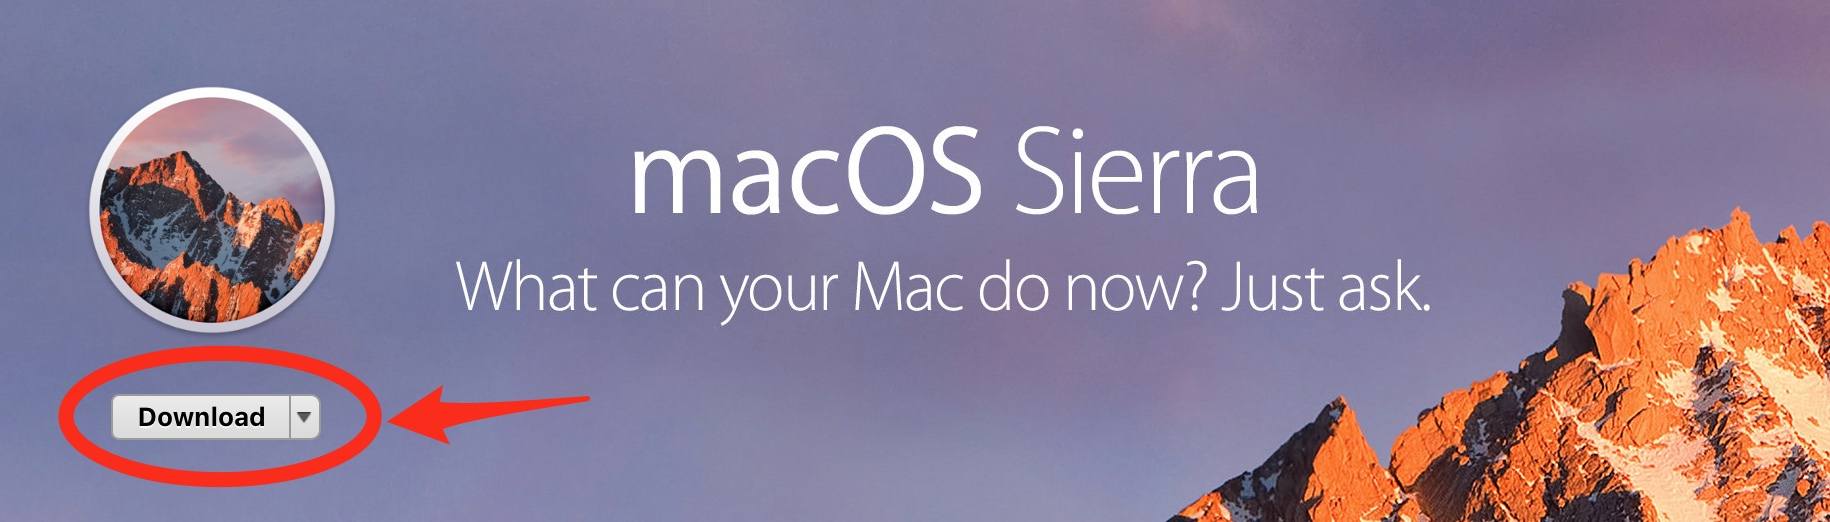 macOS Sierra 10.12 Installer Download Still Available on Mac App Store